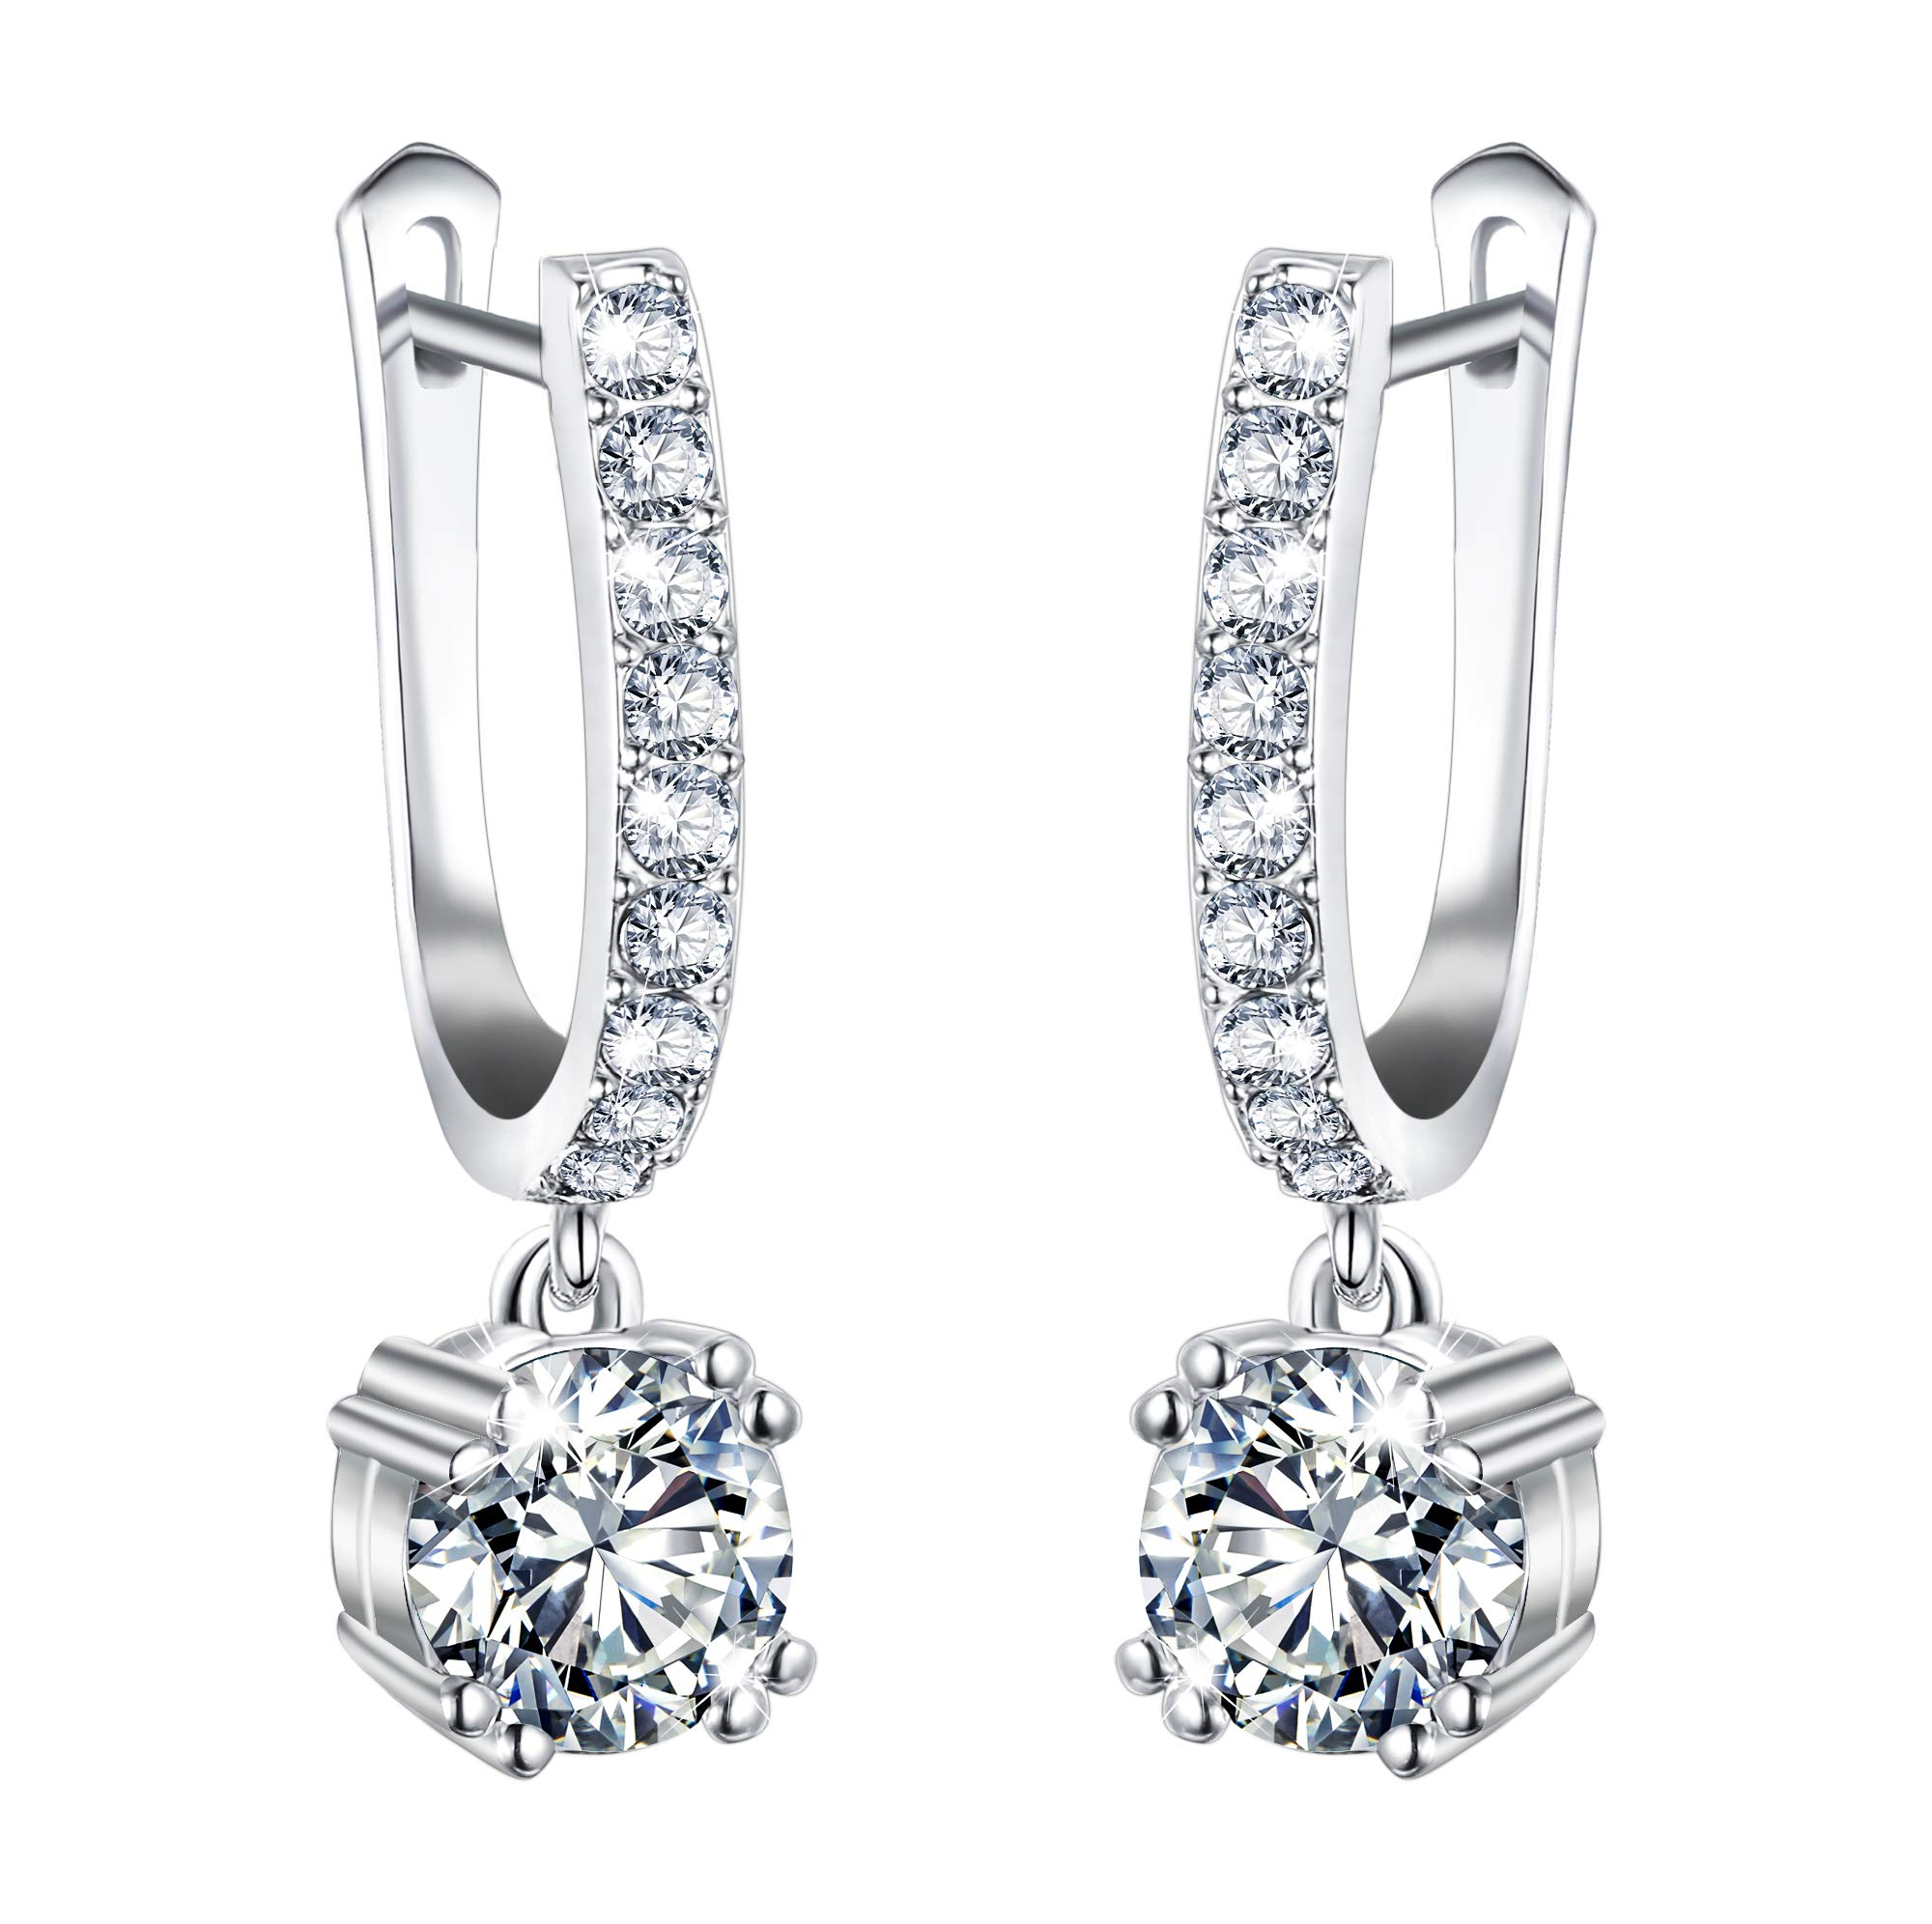 EVER FAITH Full Gorgeous Cubic Zirconia Wedding Round Drop Hoop Dangle Earrings for Brides, Bridesmaids